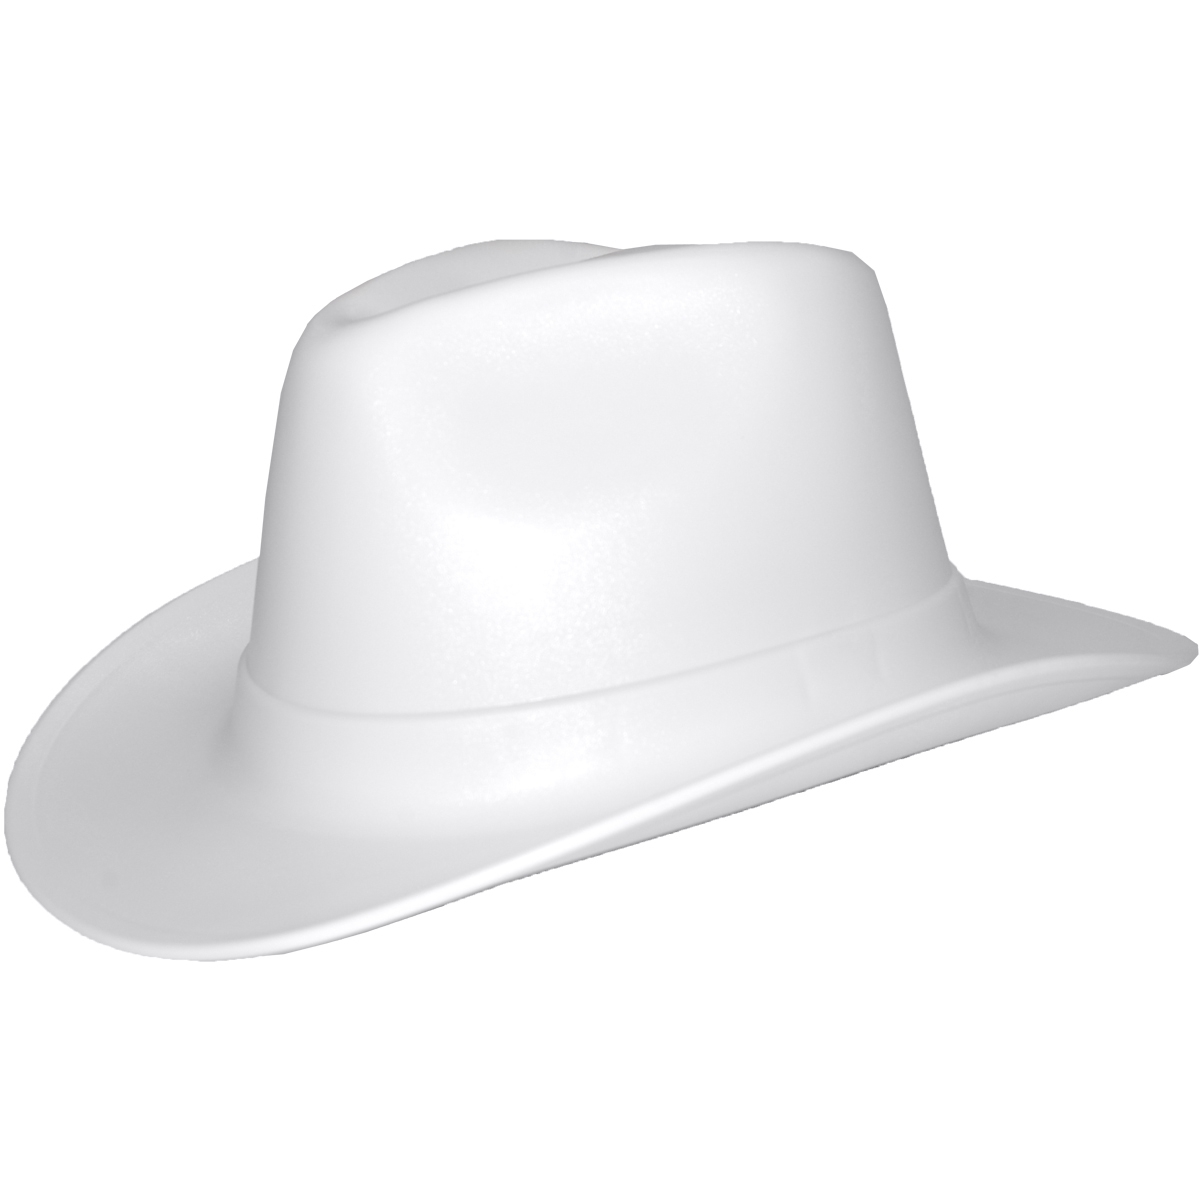 d087925349c Vulcan VCB100 Cowboy Hard Hat - 6-Point Pinlock Suspension - White ...